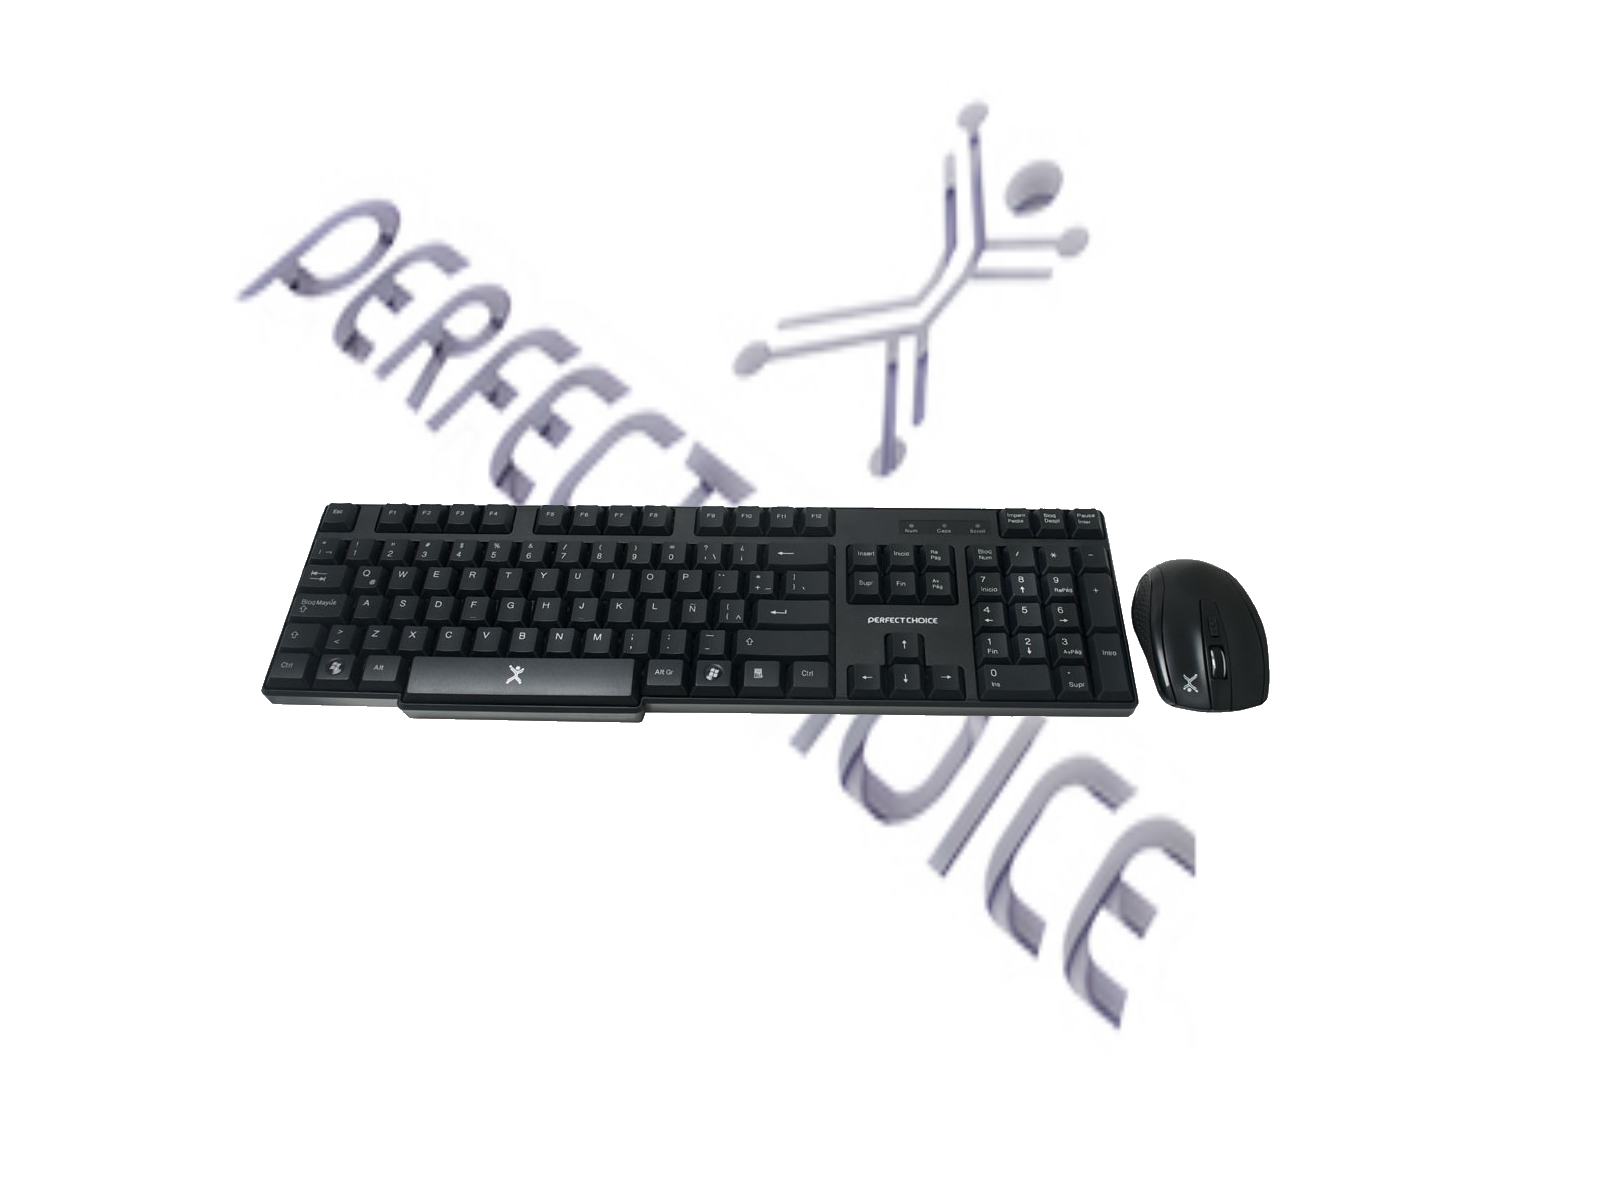 KIT TECLADO Y MOUSE INALAMBRICO PC-200994 PERFECT CHOICE